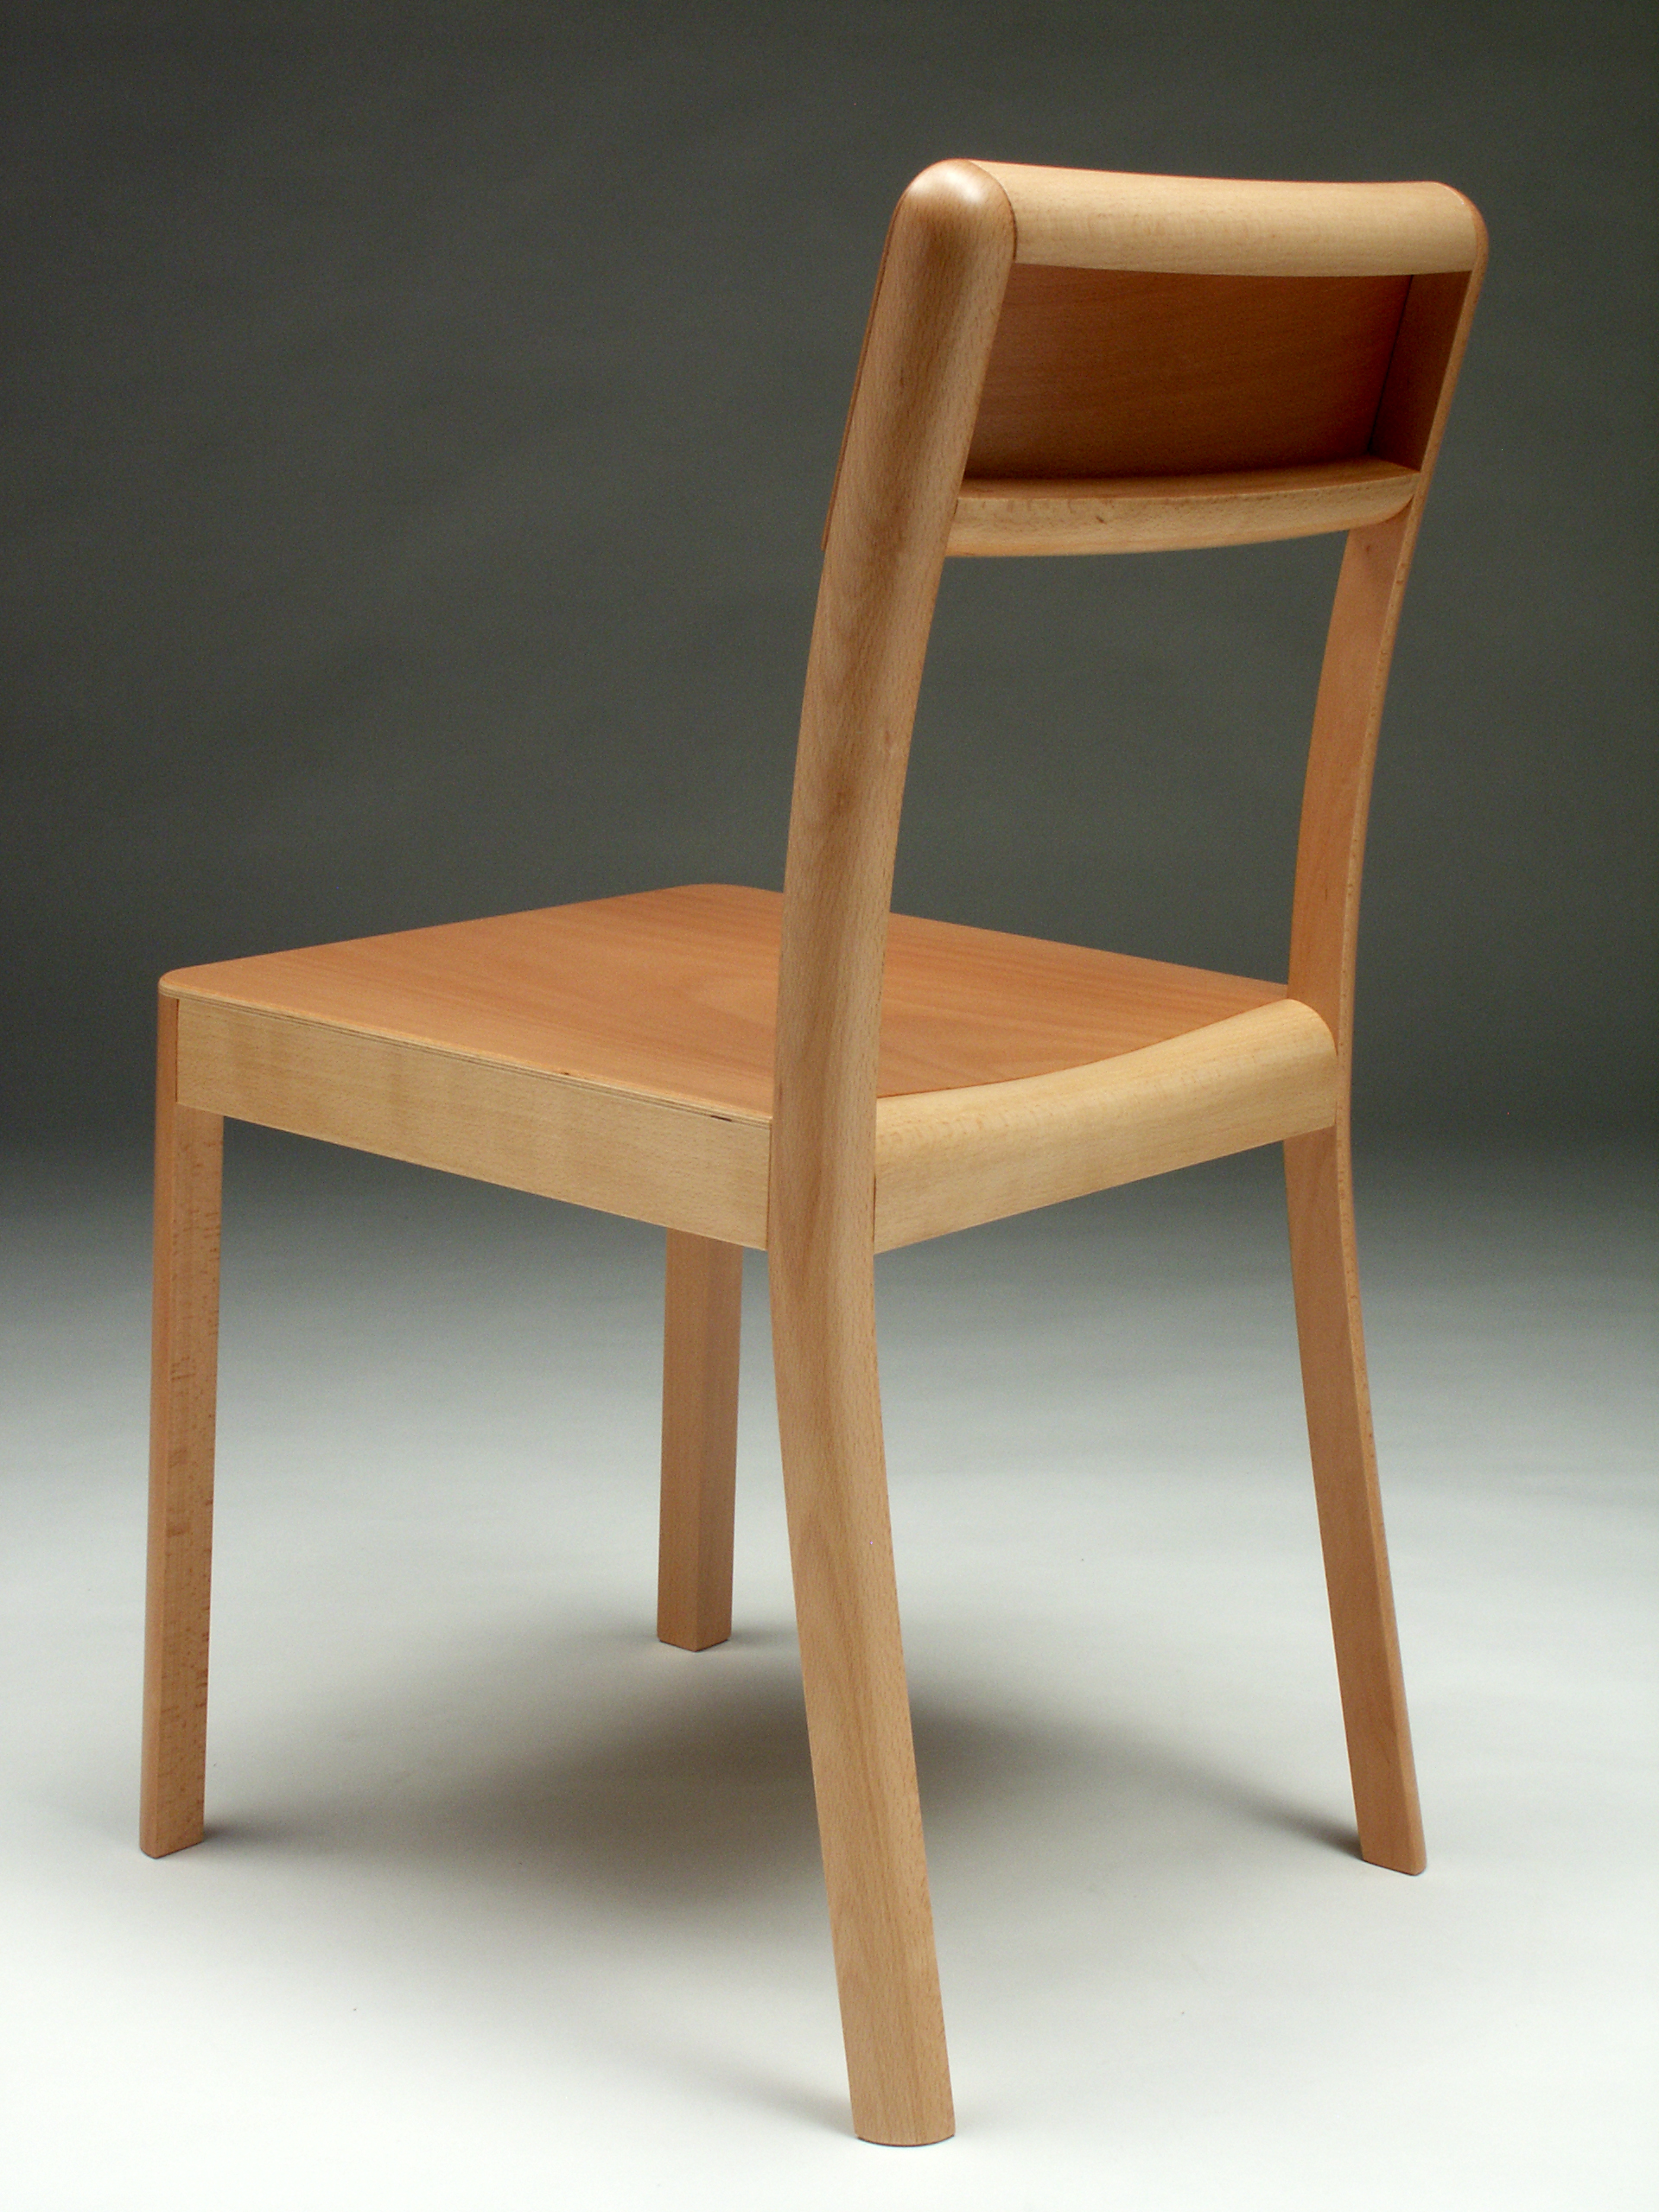 TheHome_Chair_photos_woodenchair_32.jpg